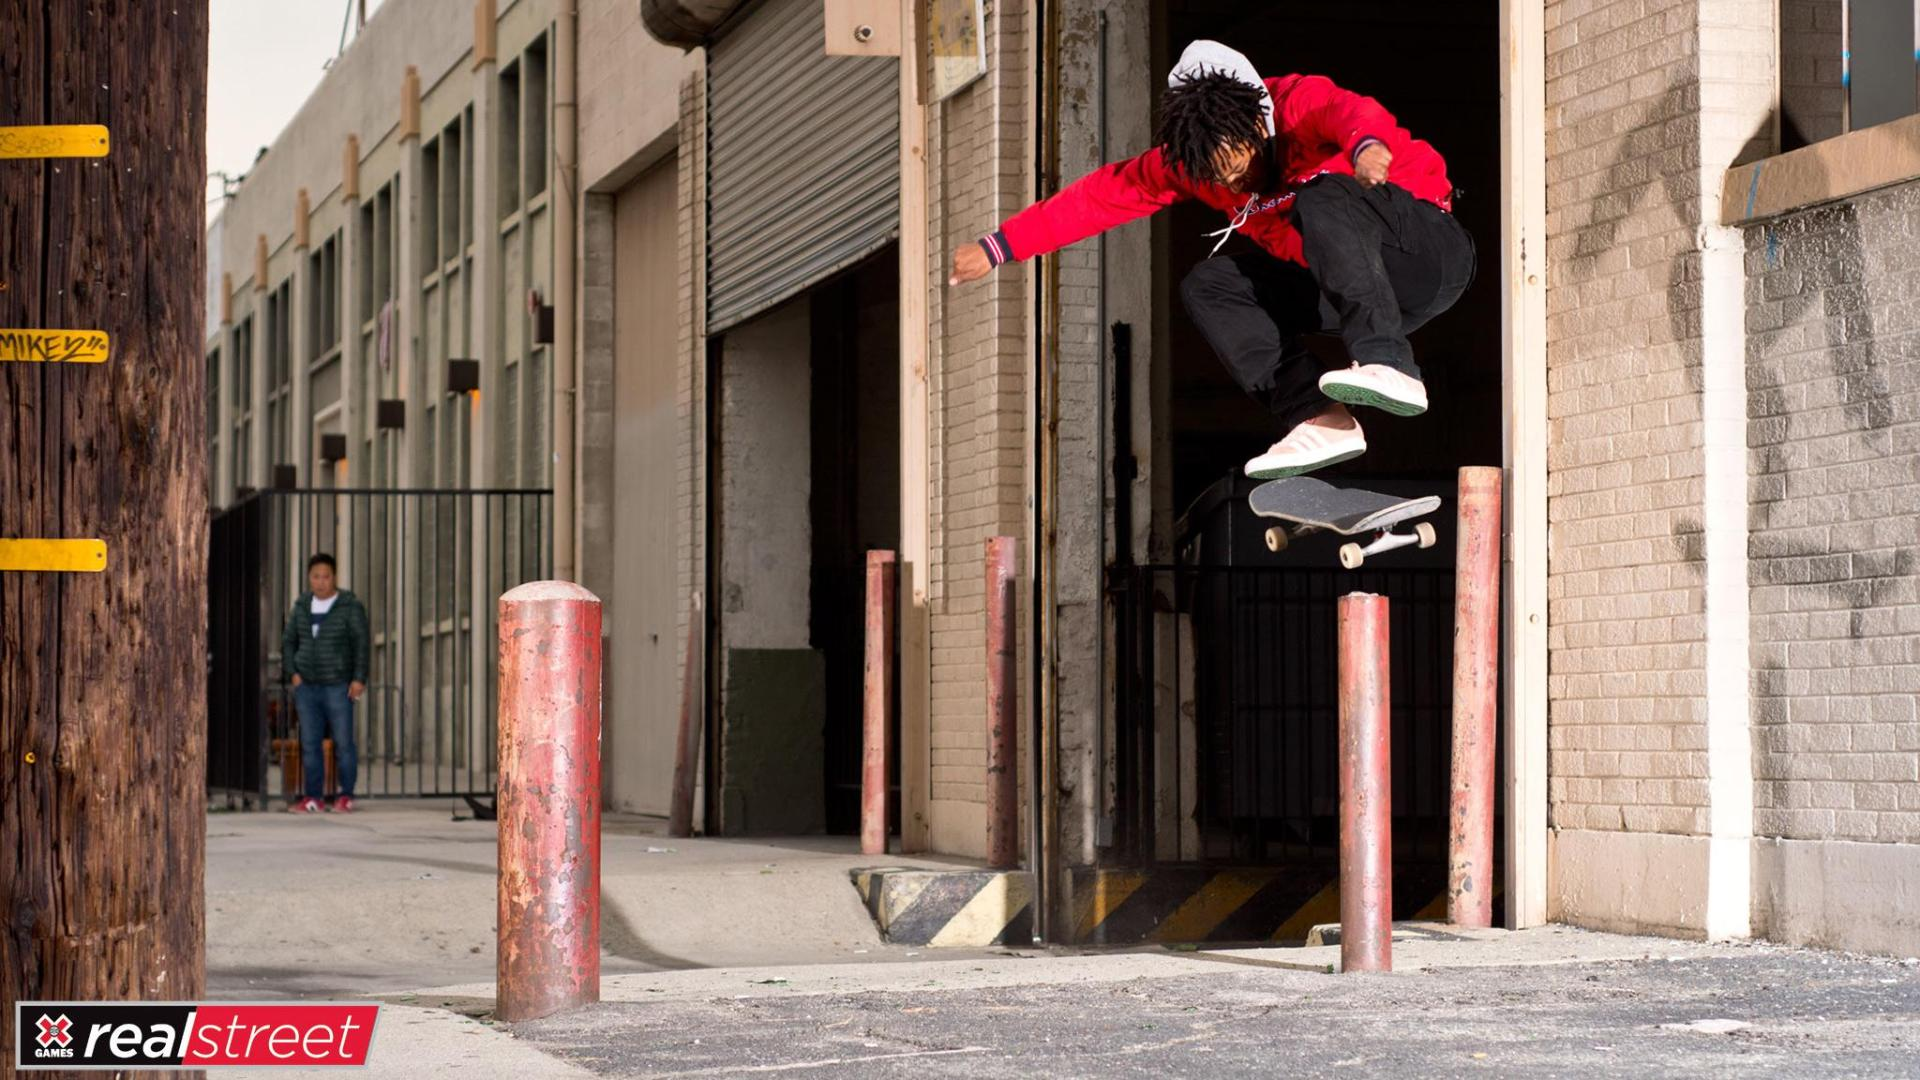 c603d1c1c0f2 Real Street 2017 interview with FA and Adidas pro Na-Kel Smith